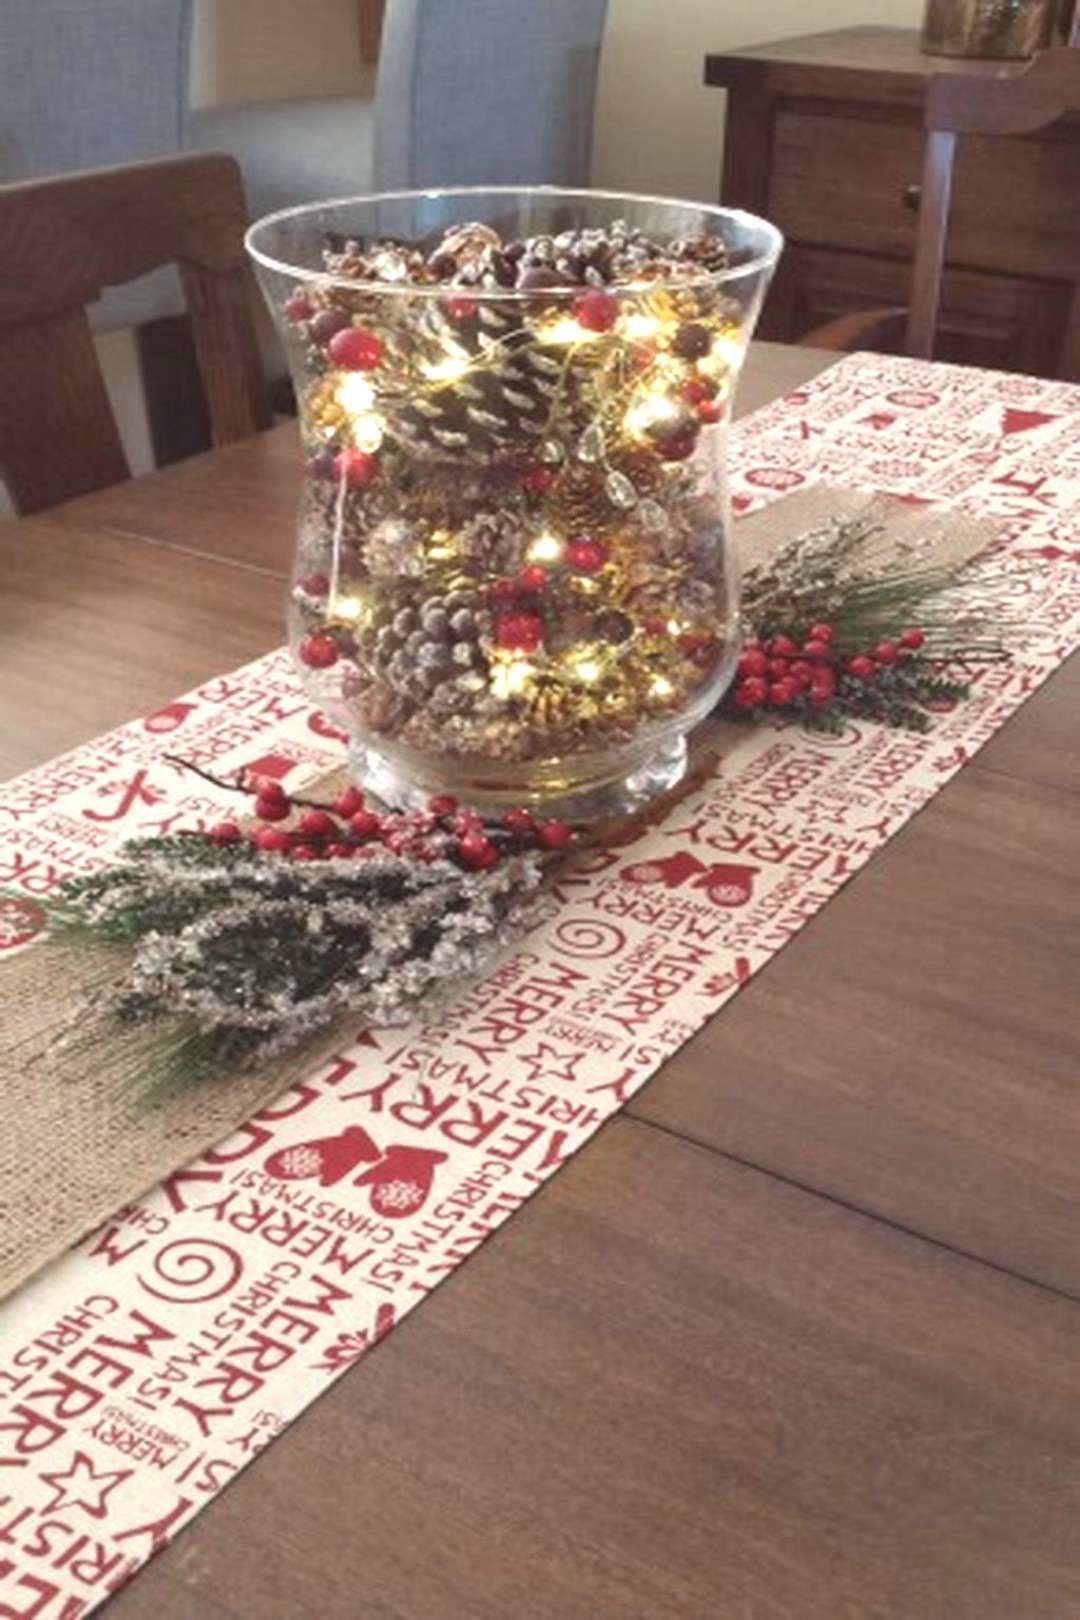 Inspiring Modern Rustic Christmas Centerpieces Ideas With Candles 61